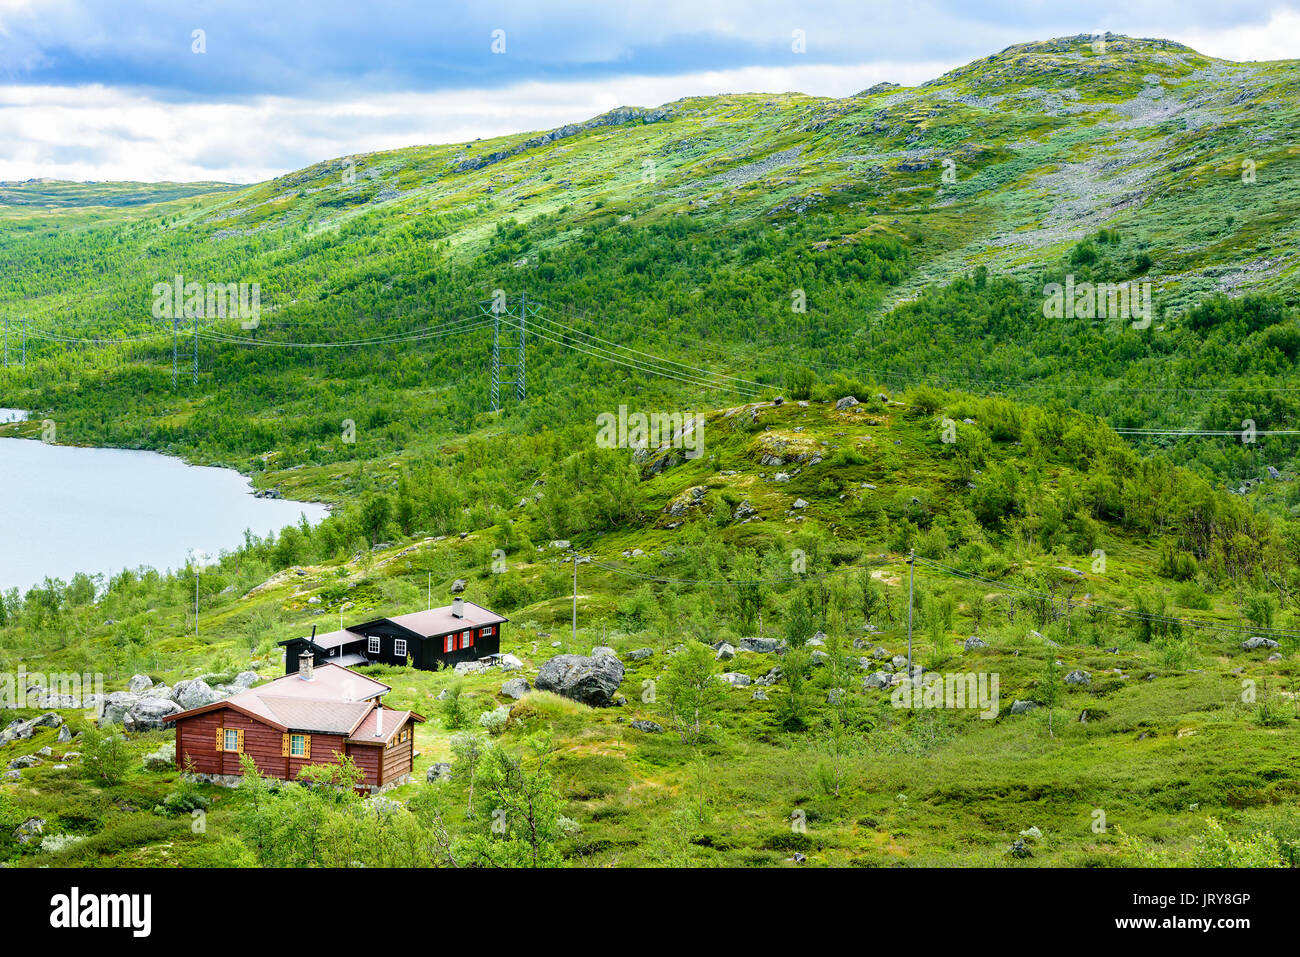 Group of small lakeside cabins in mountainous landscape powerlines on the mountainside mountain peak in background location hardangervidda in norwa